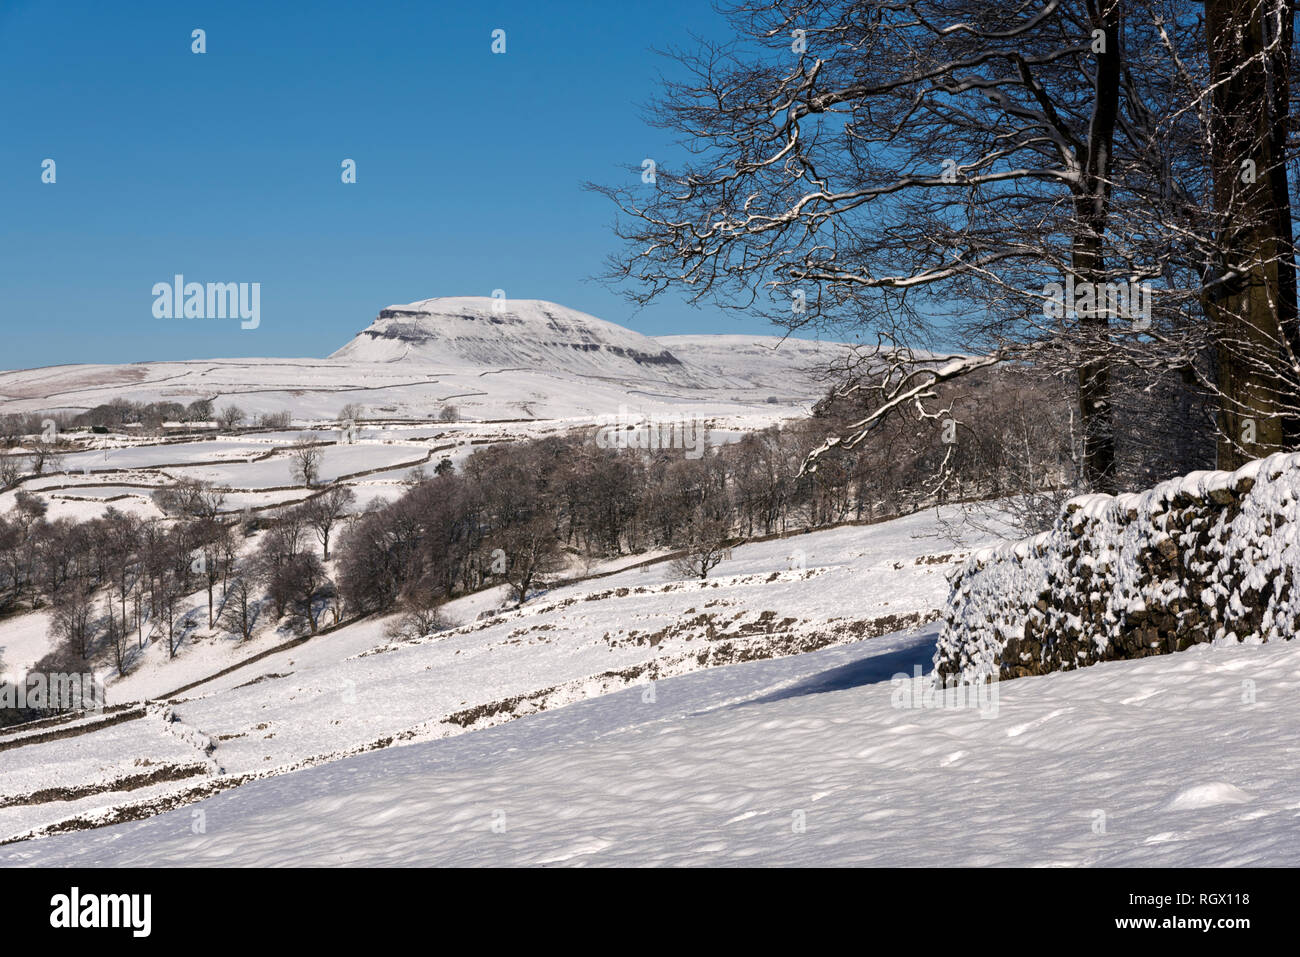 Winter view of a snow covered Pen-y-ghent peak, seem from Langcliffe, Yorkshire Dales National Park, UK - Stock Image